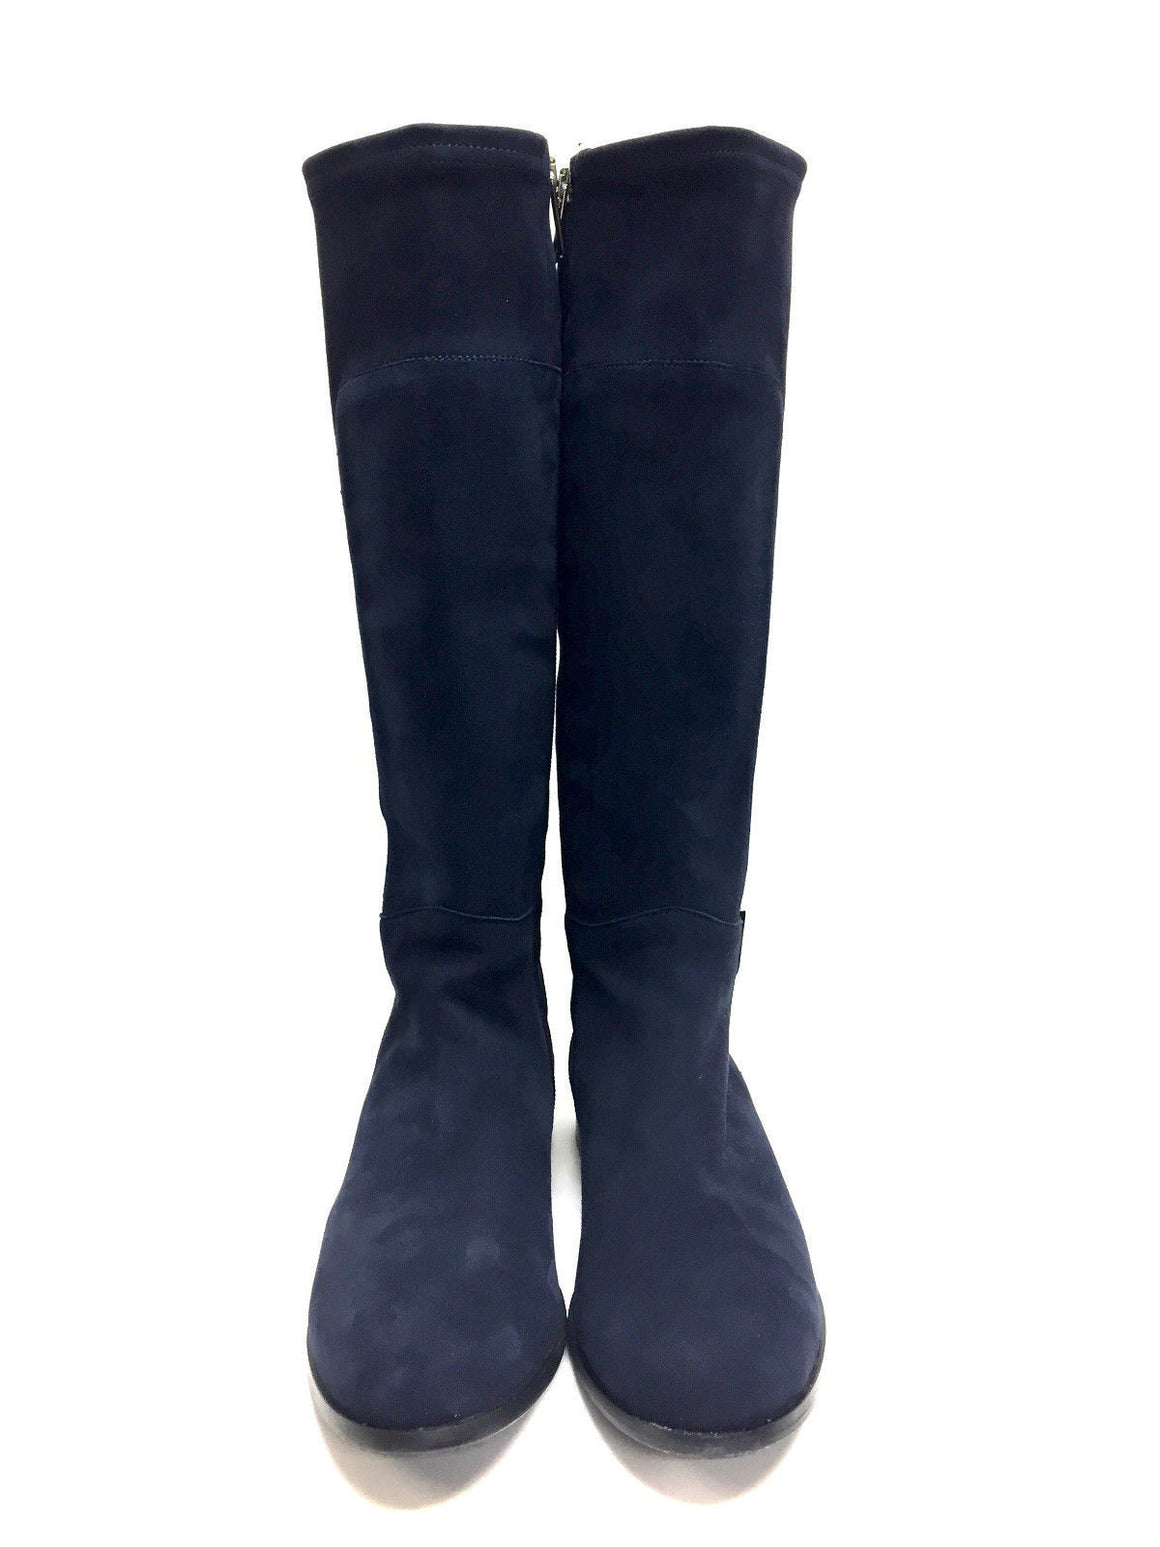 bisbiz.com AQUATALIA by MARVIN K  Navy Suede Tall Flat Weatherproof Boots Size: 8 - Bis Luxury Resale